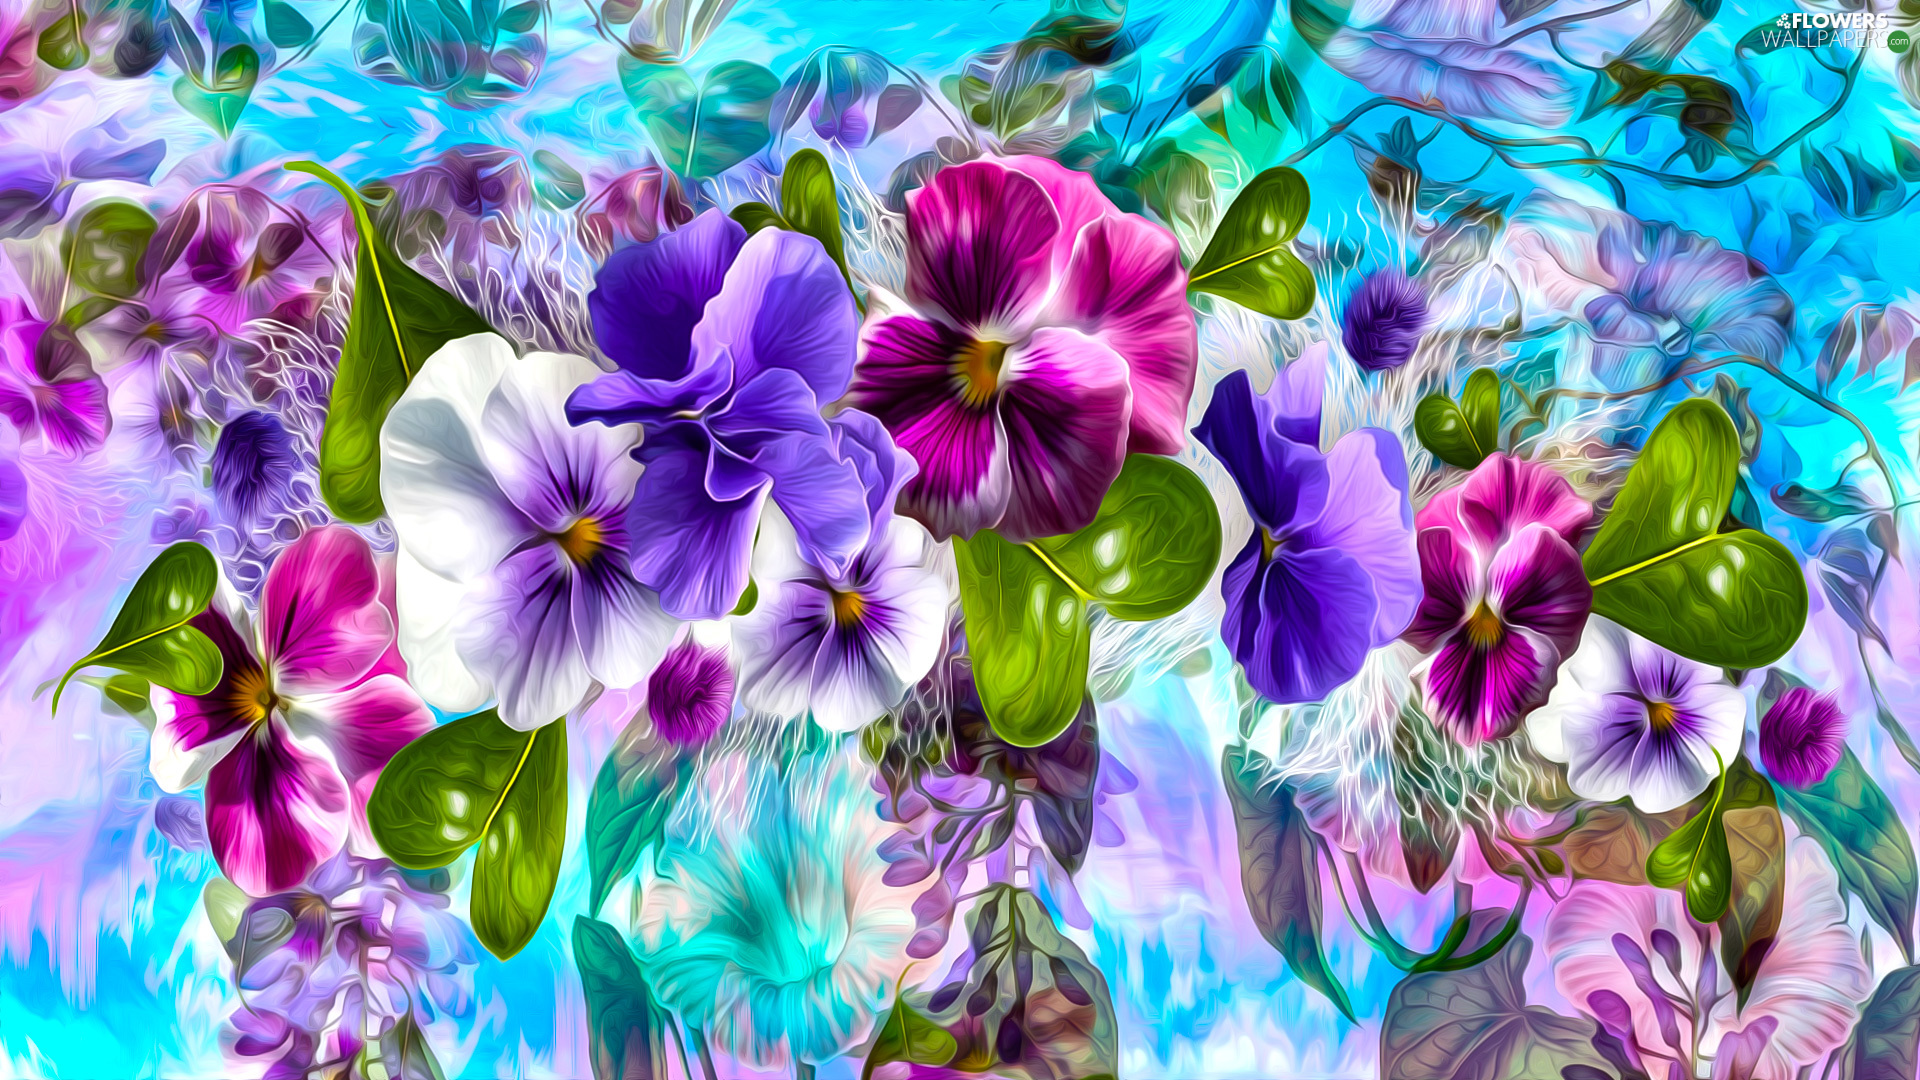 Flowers, leaves, graphics, pansies